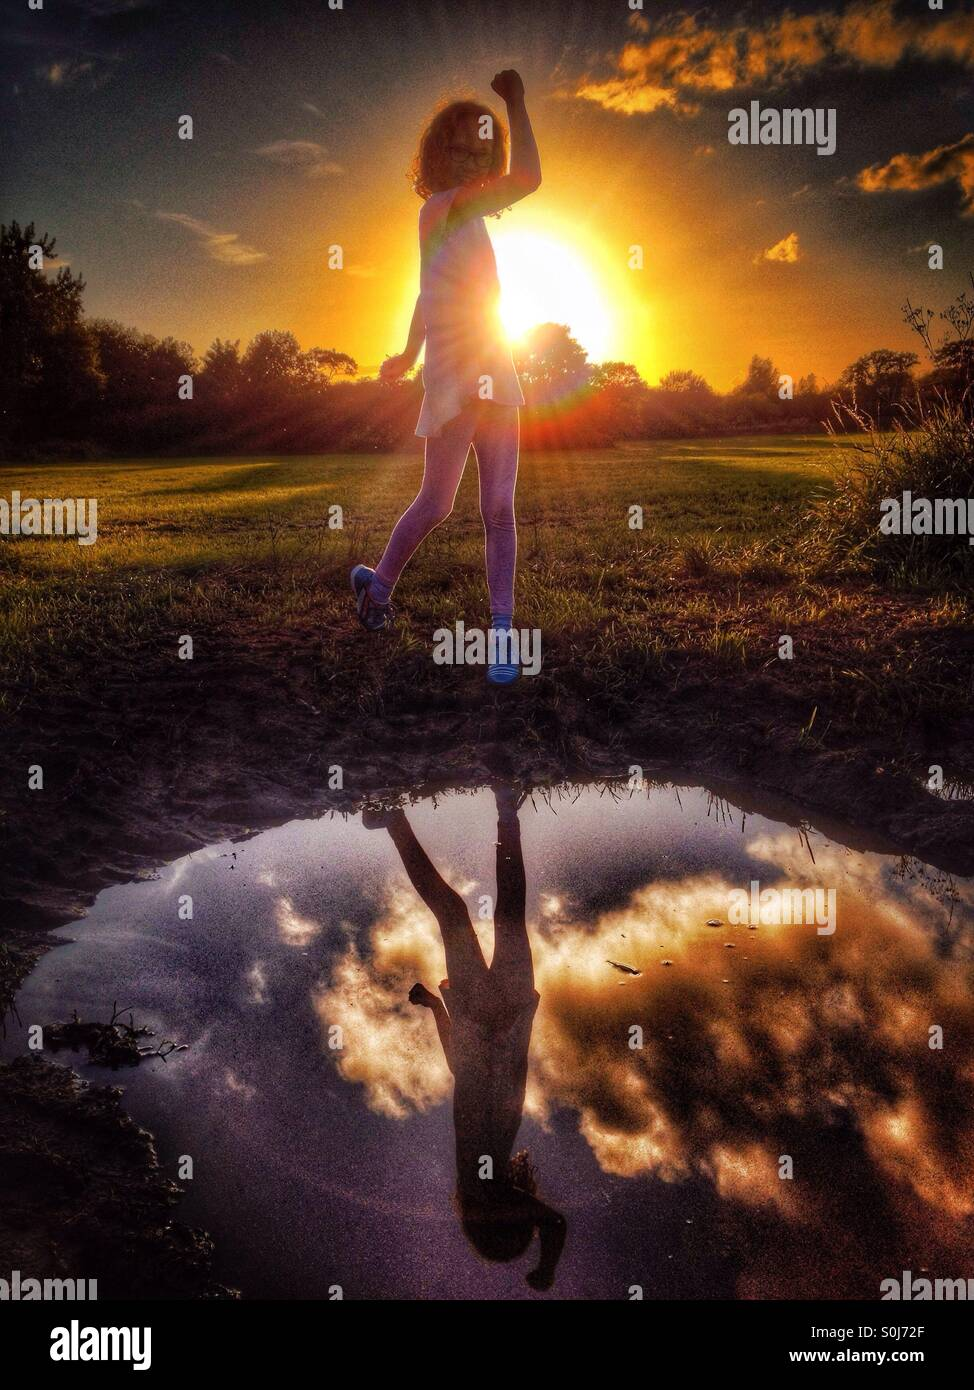 Young girl posing with raised arm in front of setting sun reflected in puddle - Stock Image